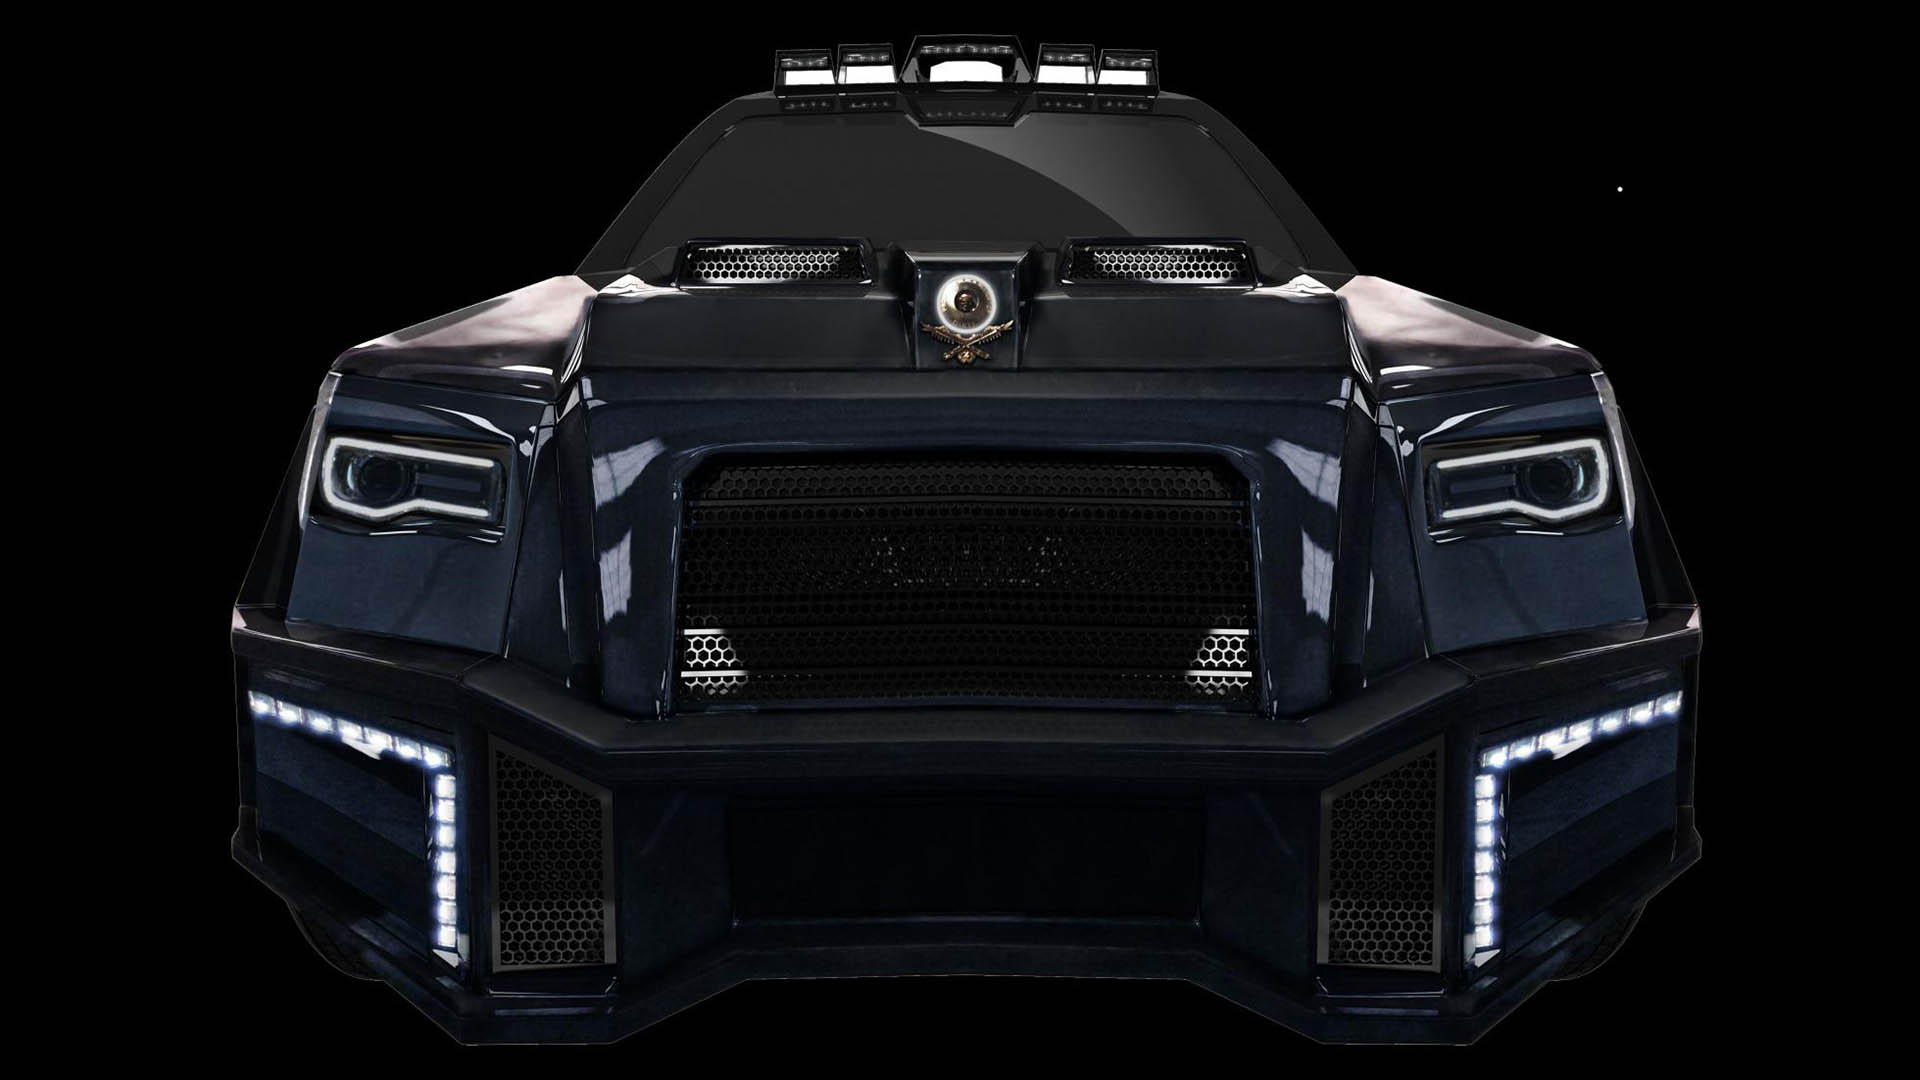 Dartz Debuts New Black Alligator SUV, Only Accepts Bitcoin and Ethereum